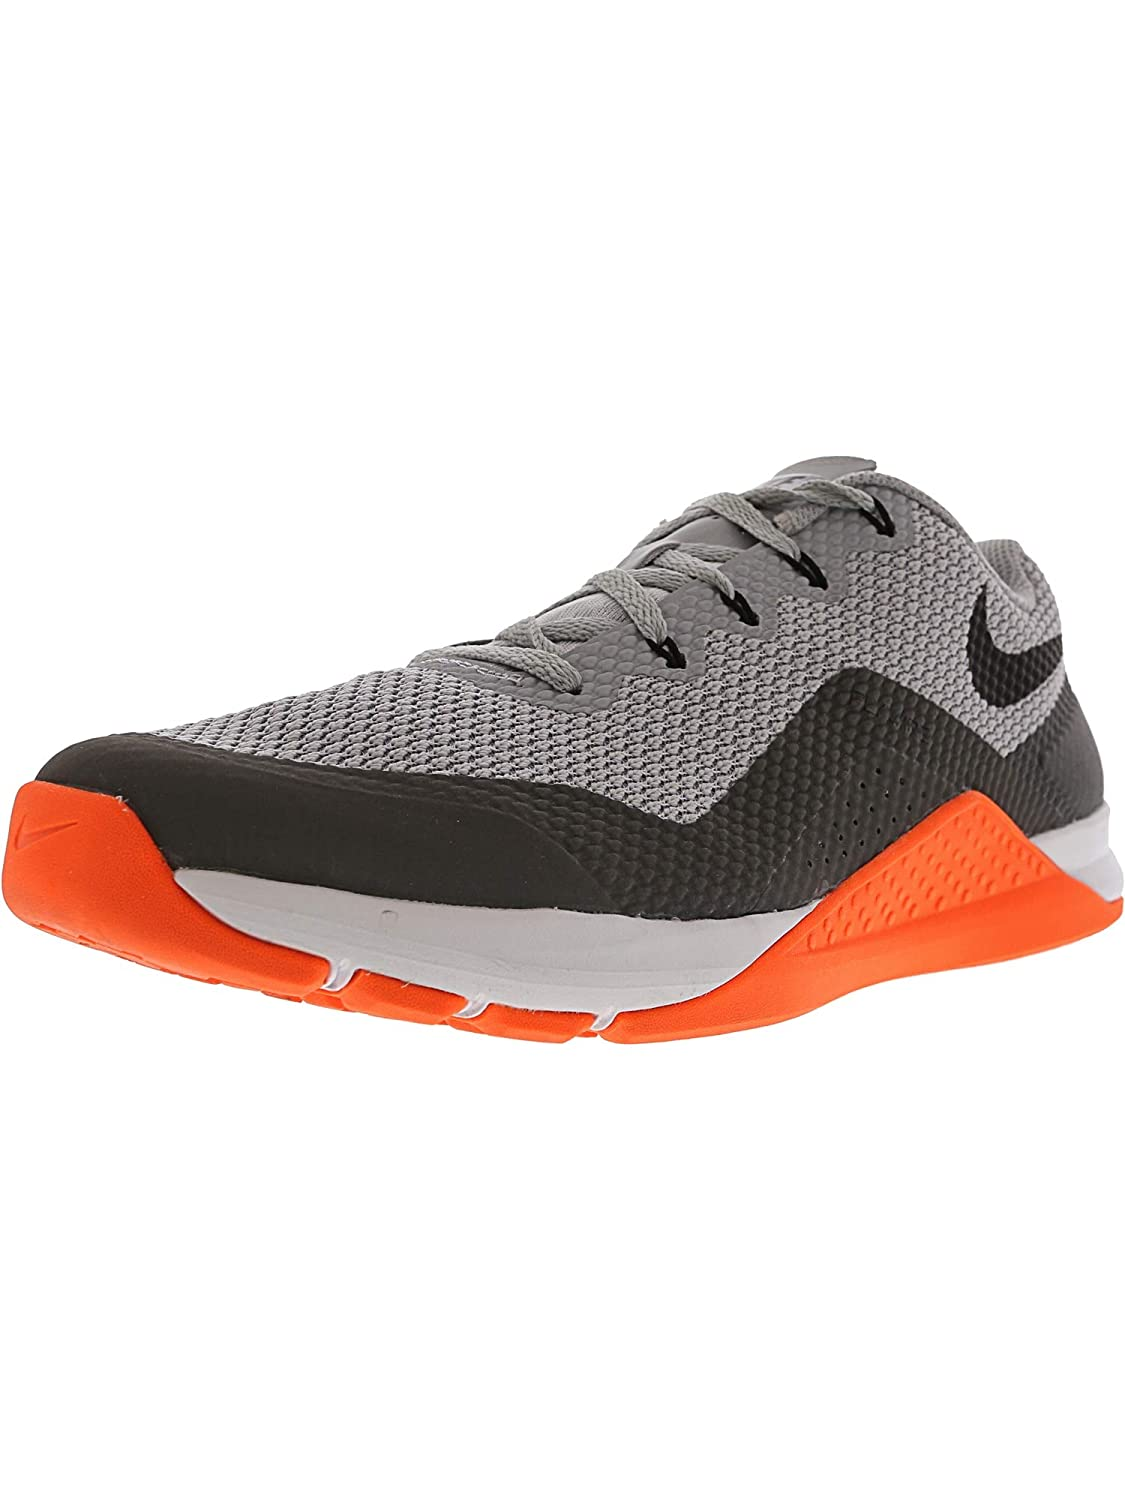 6513422d8b14 Nike Men s Metcon Repper DSX Training Shoes (UK-7 (US-8)) Grey  Buy Online  at Low Prices in India - Amazon.in